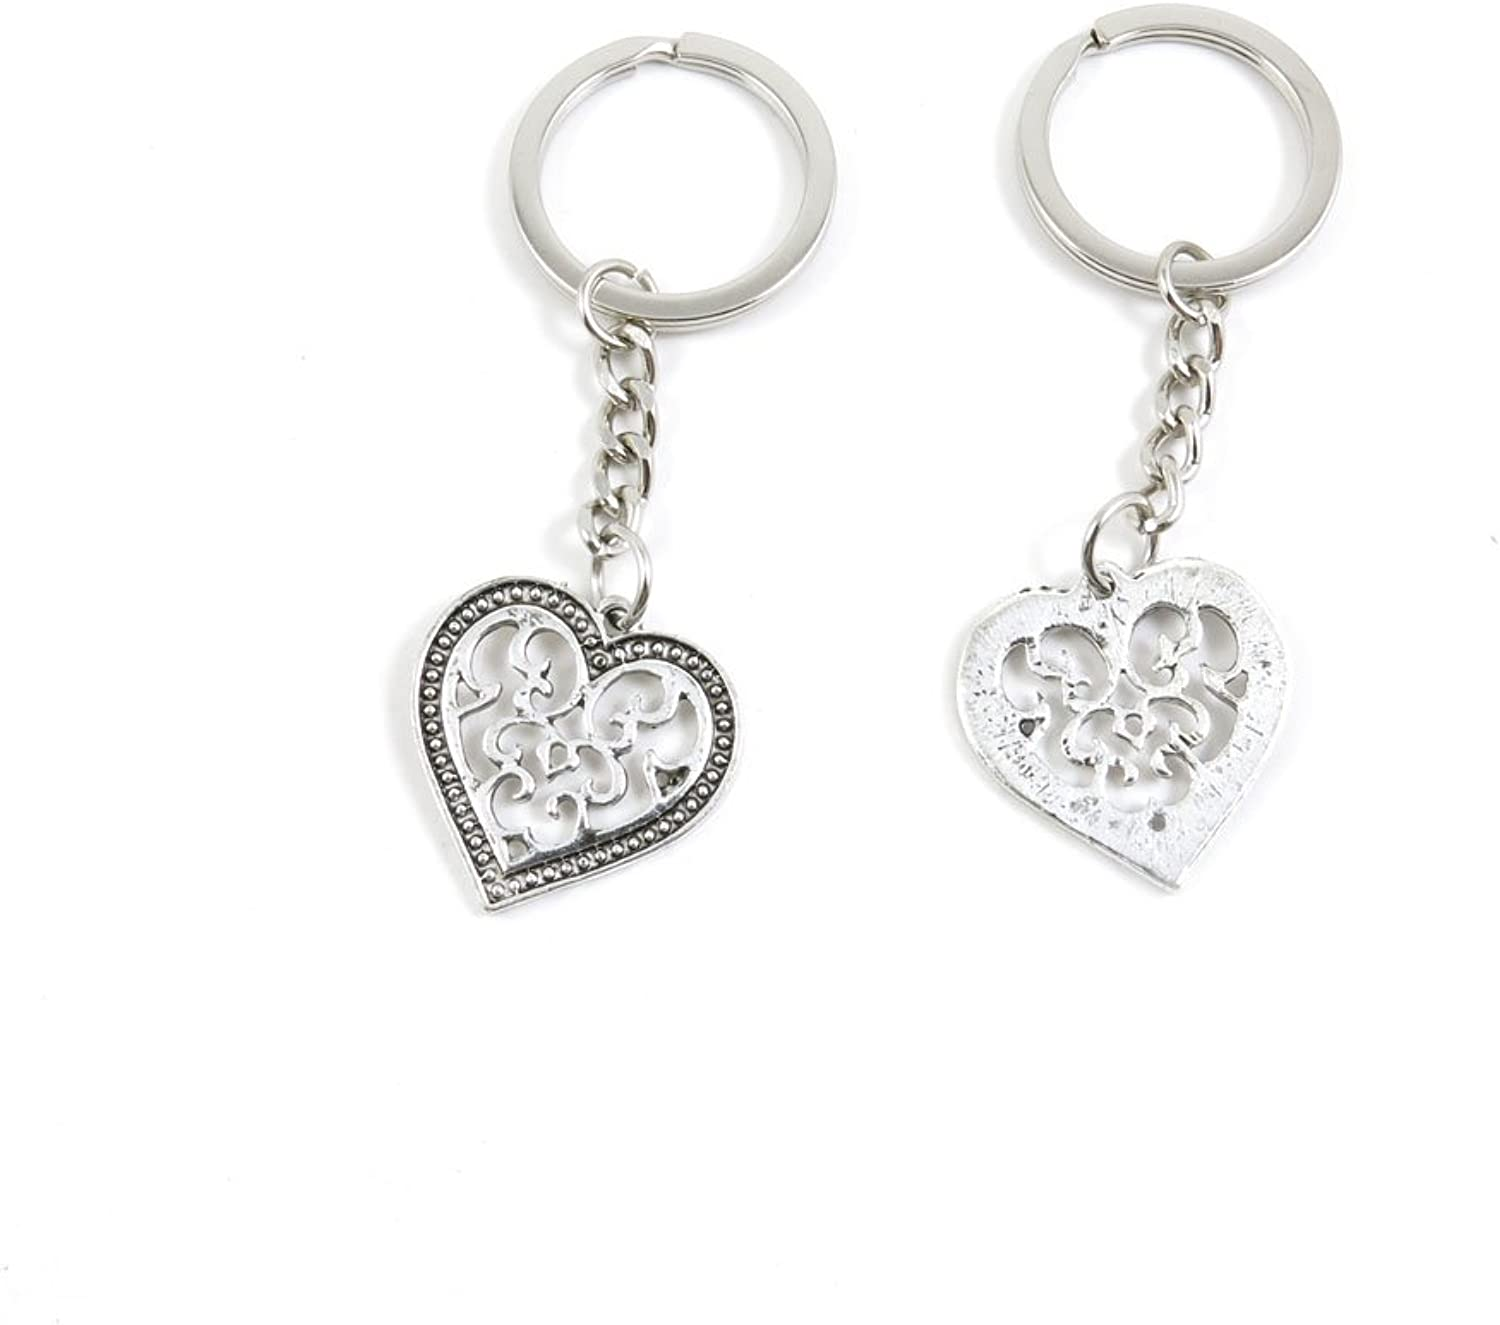 100 Pieces Keychain Keyring Door Car Key Chain Ring Tag Charms Bulk Supply Jewelry Making Clasp Findings Y4KY2T Heart